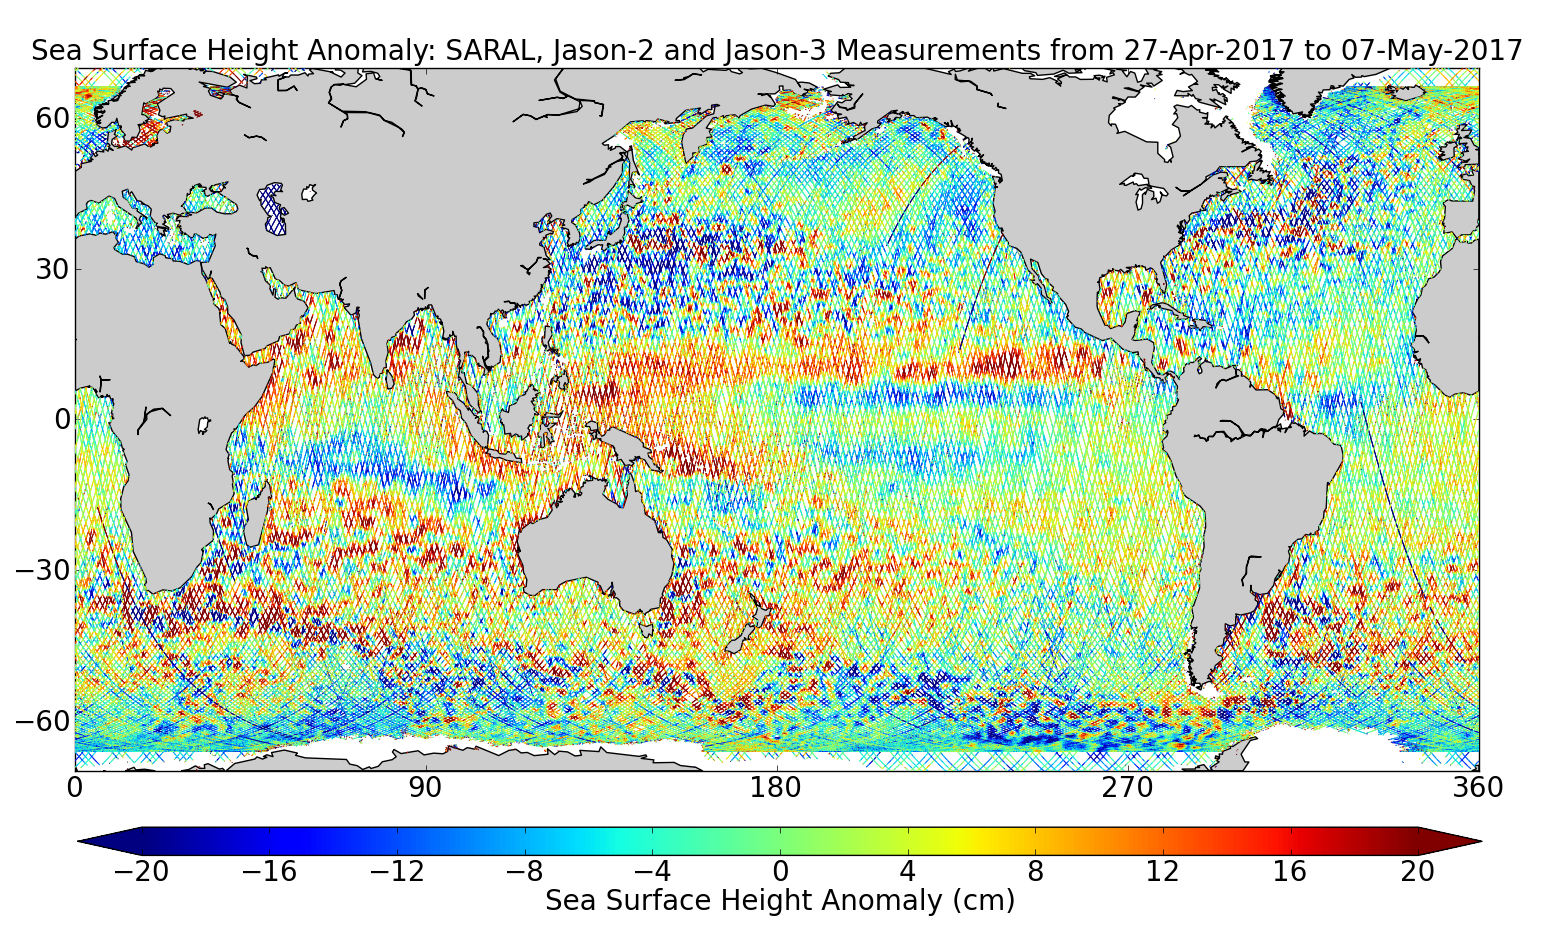 Sea Surface Height Anomaly: SARAL, Jason-2 and Jason-3 Measurements from 27-Apr-2017 to 07-May-2017